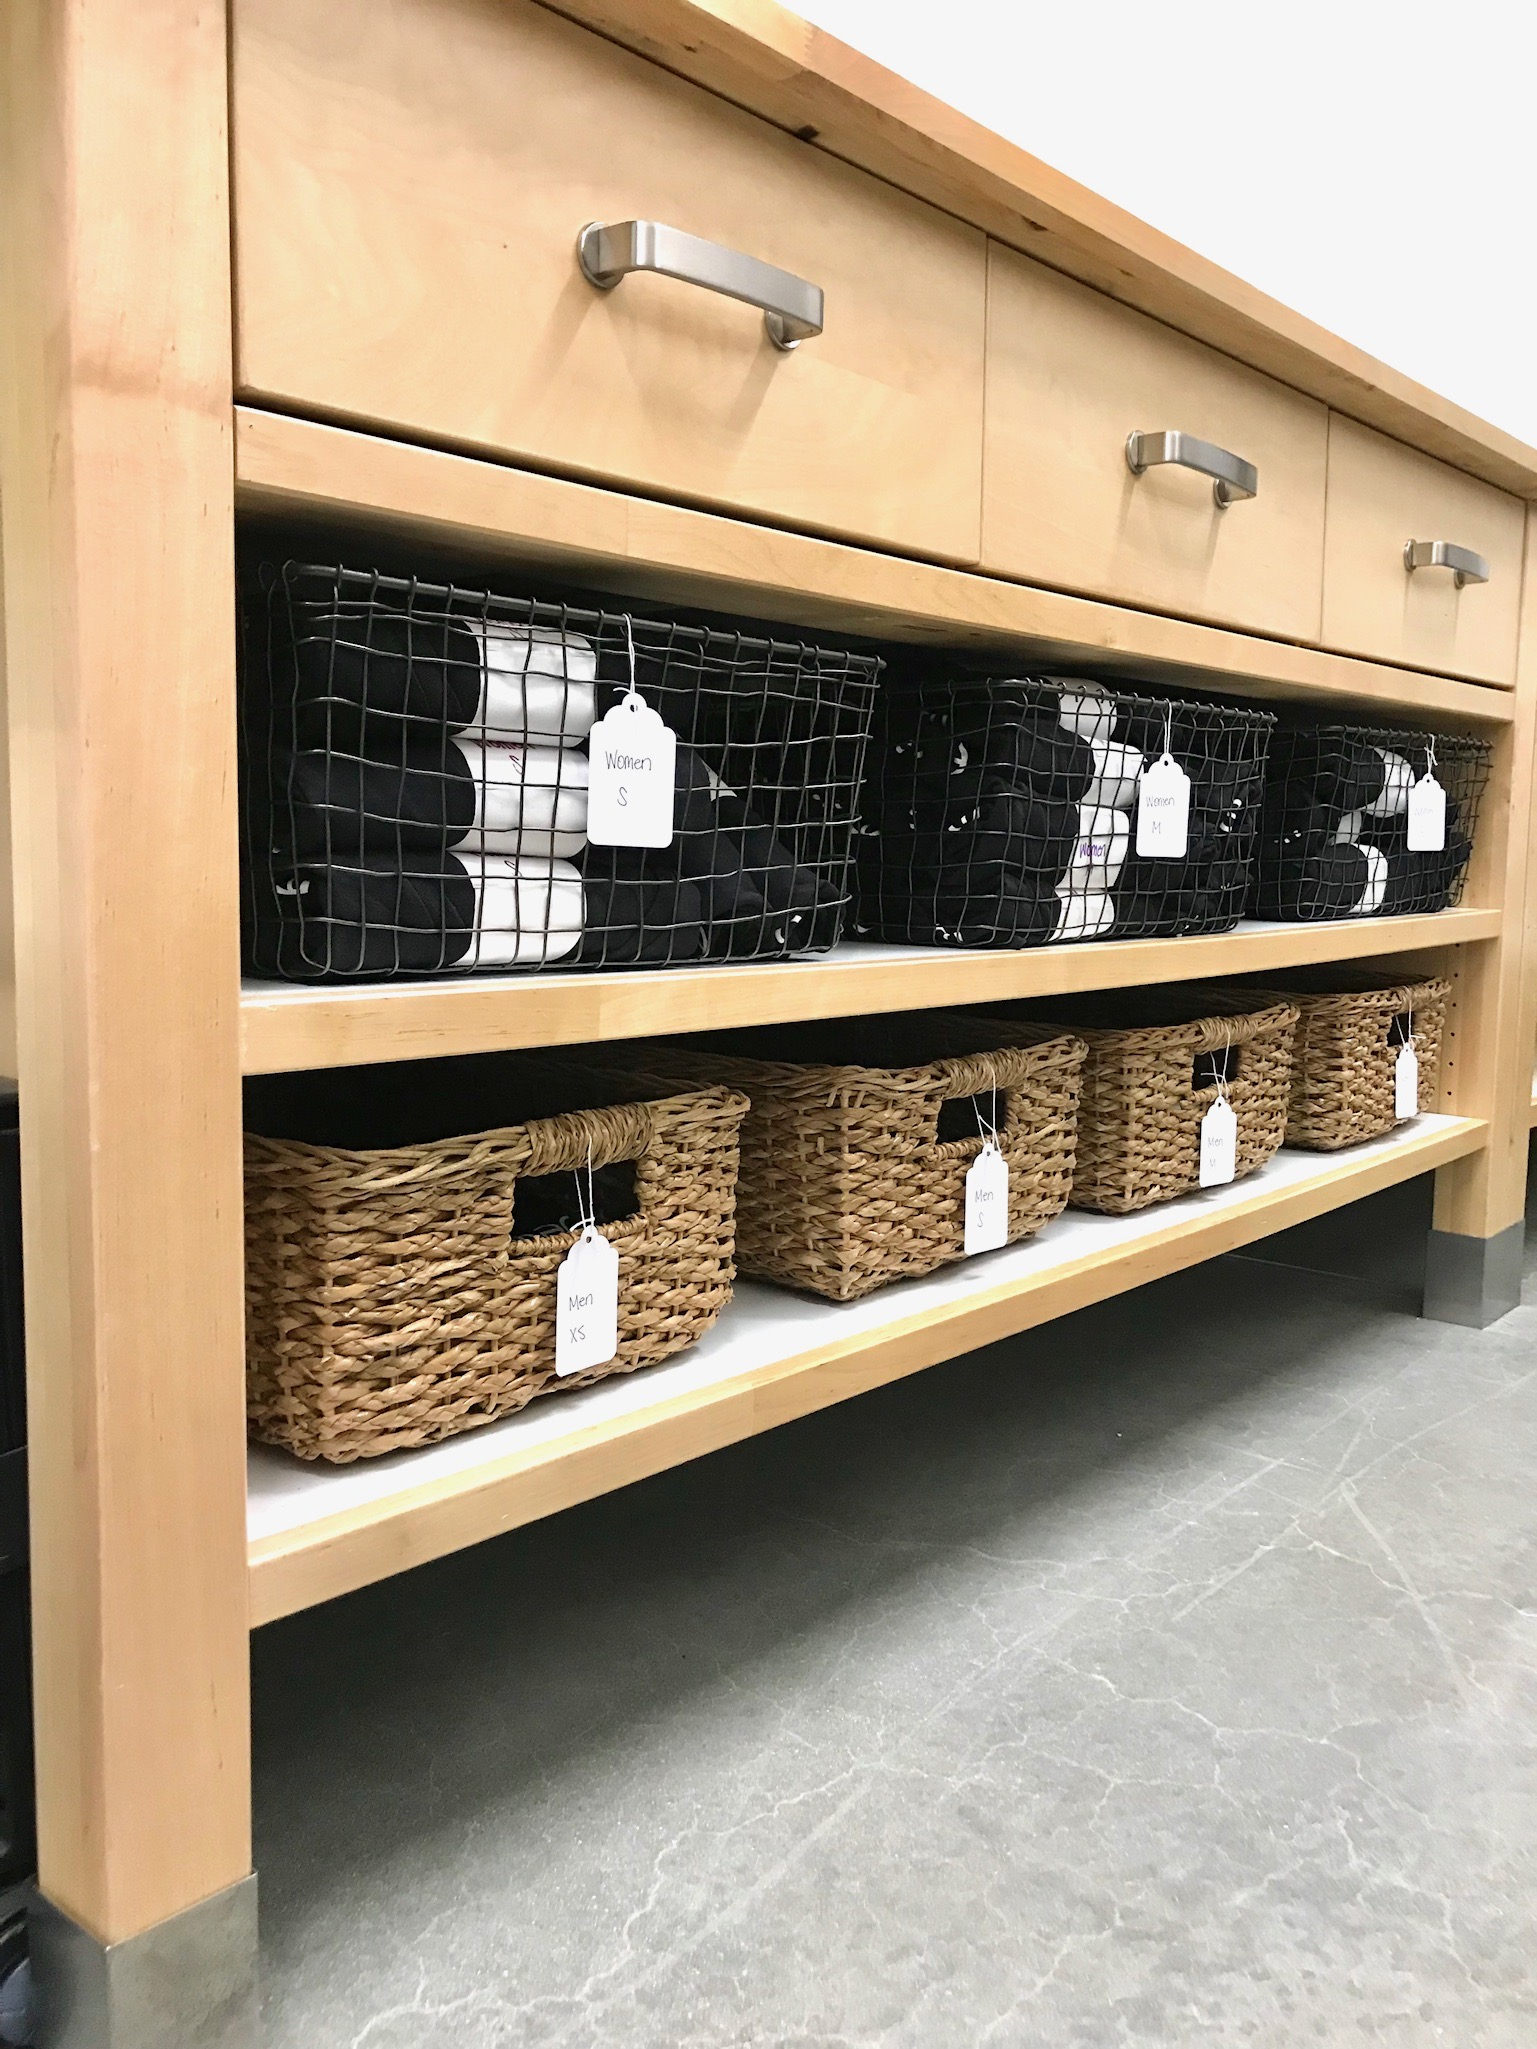 Labeled wire and wicker baskets used on wooden shelving to organize merchandise for a local small business.